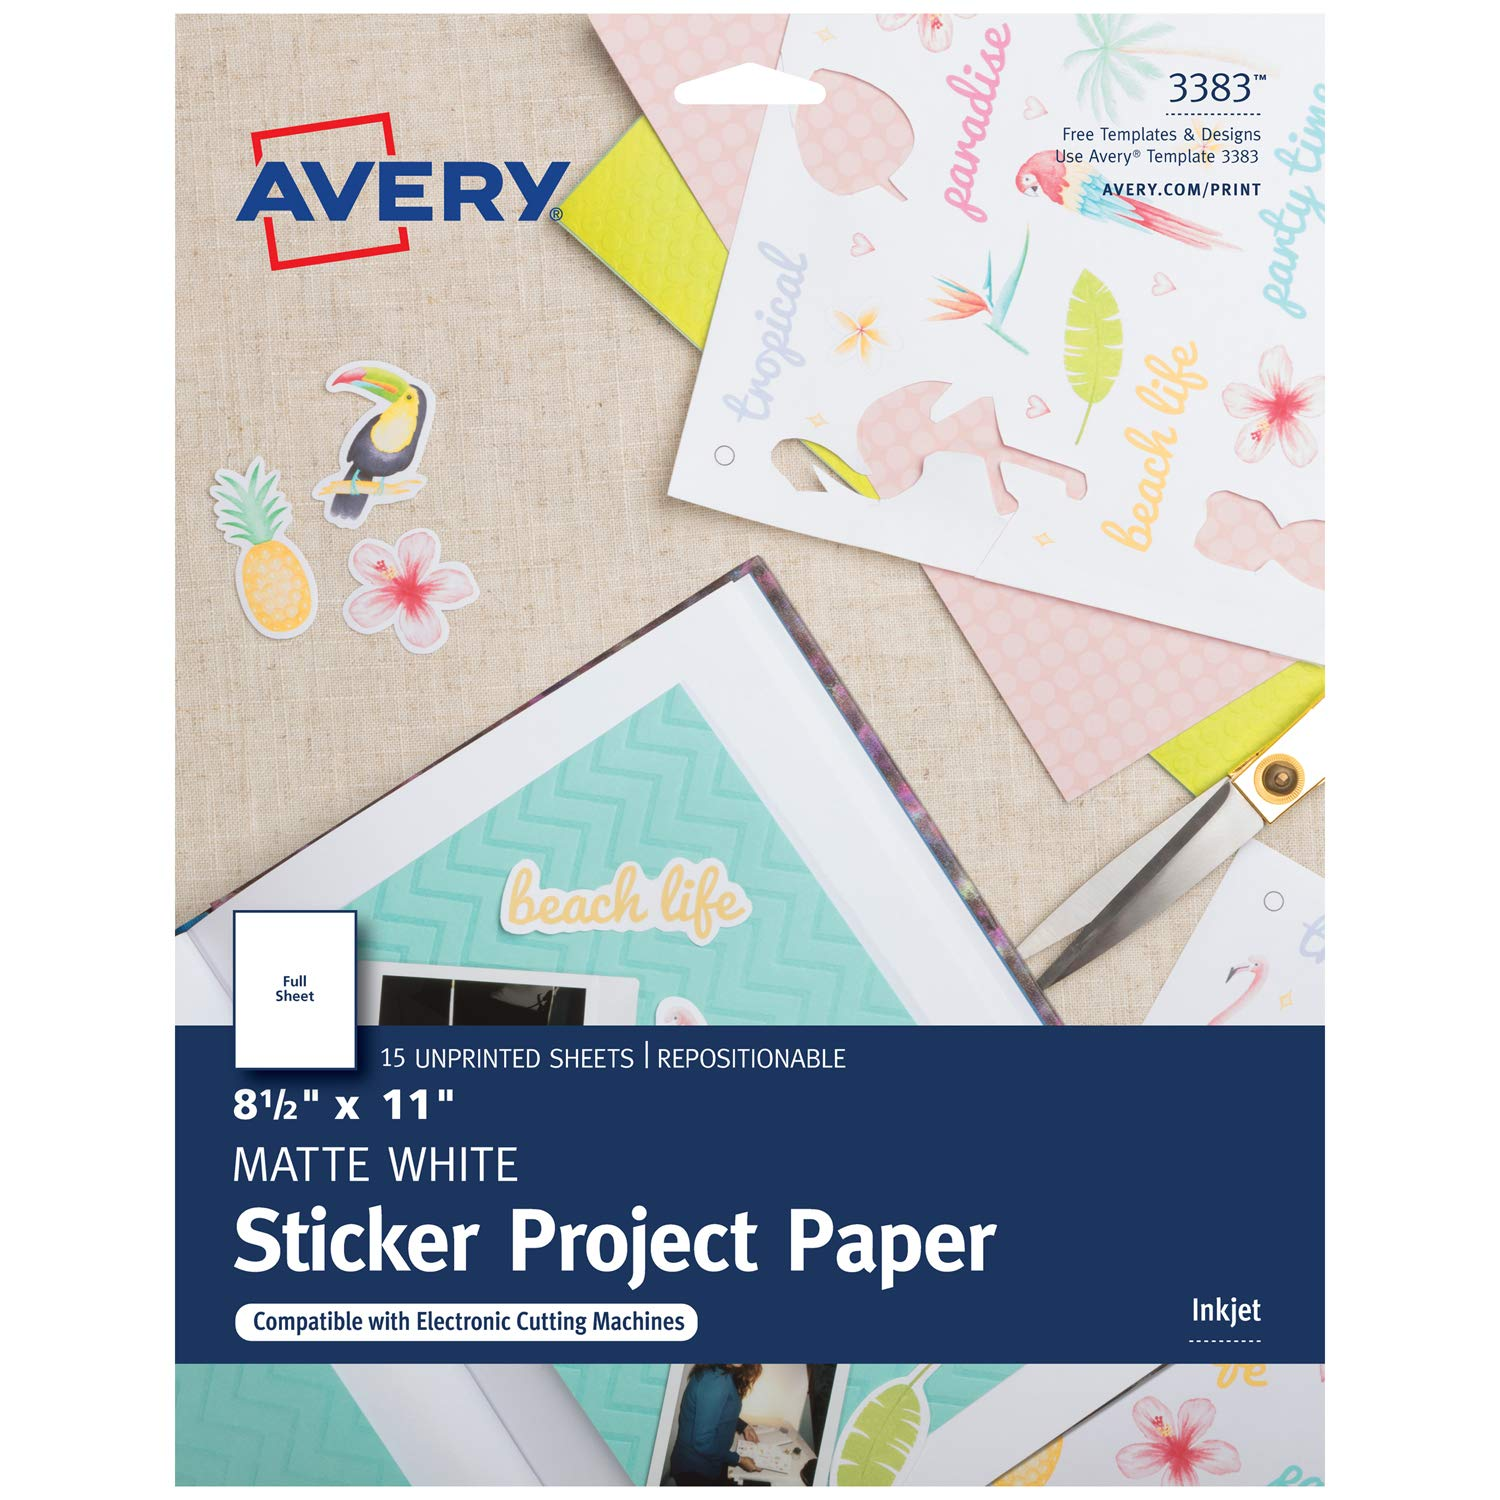 Avery Sticker Project Paper White 8 5 x 11 Inches Pack of 15